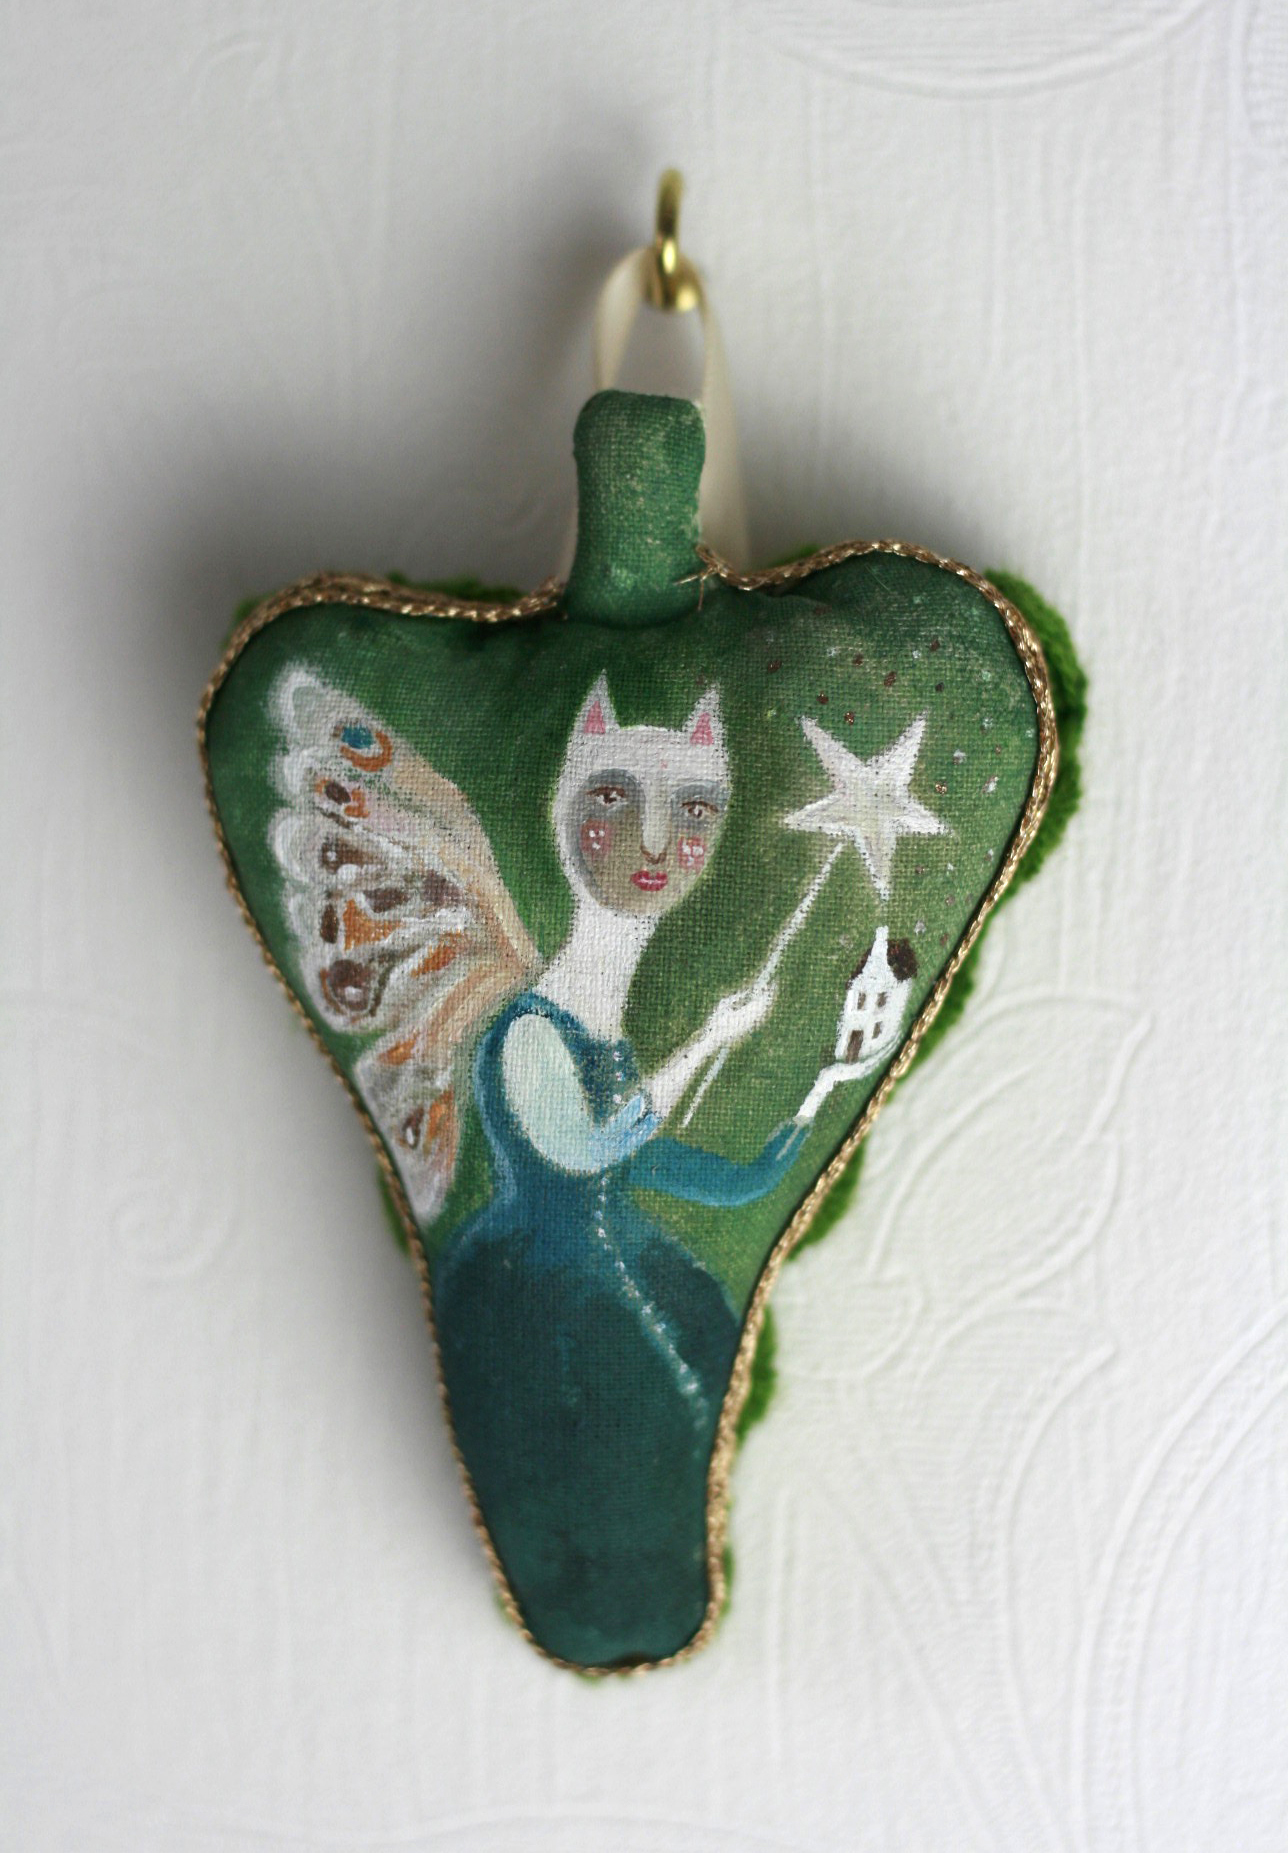 ex voto ornament